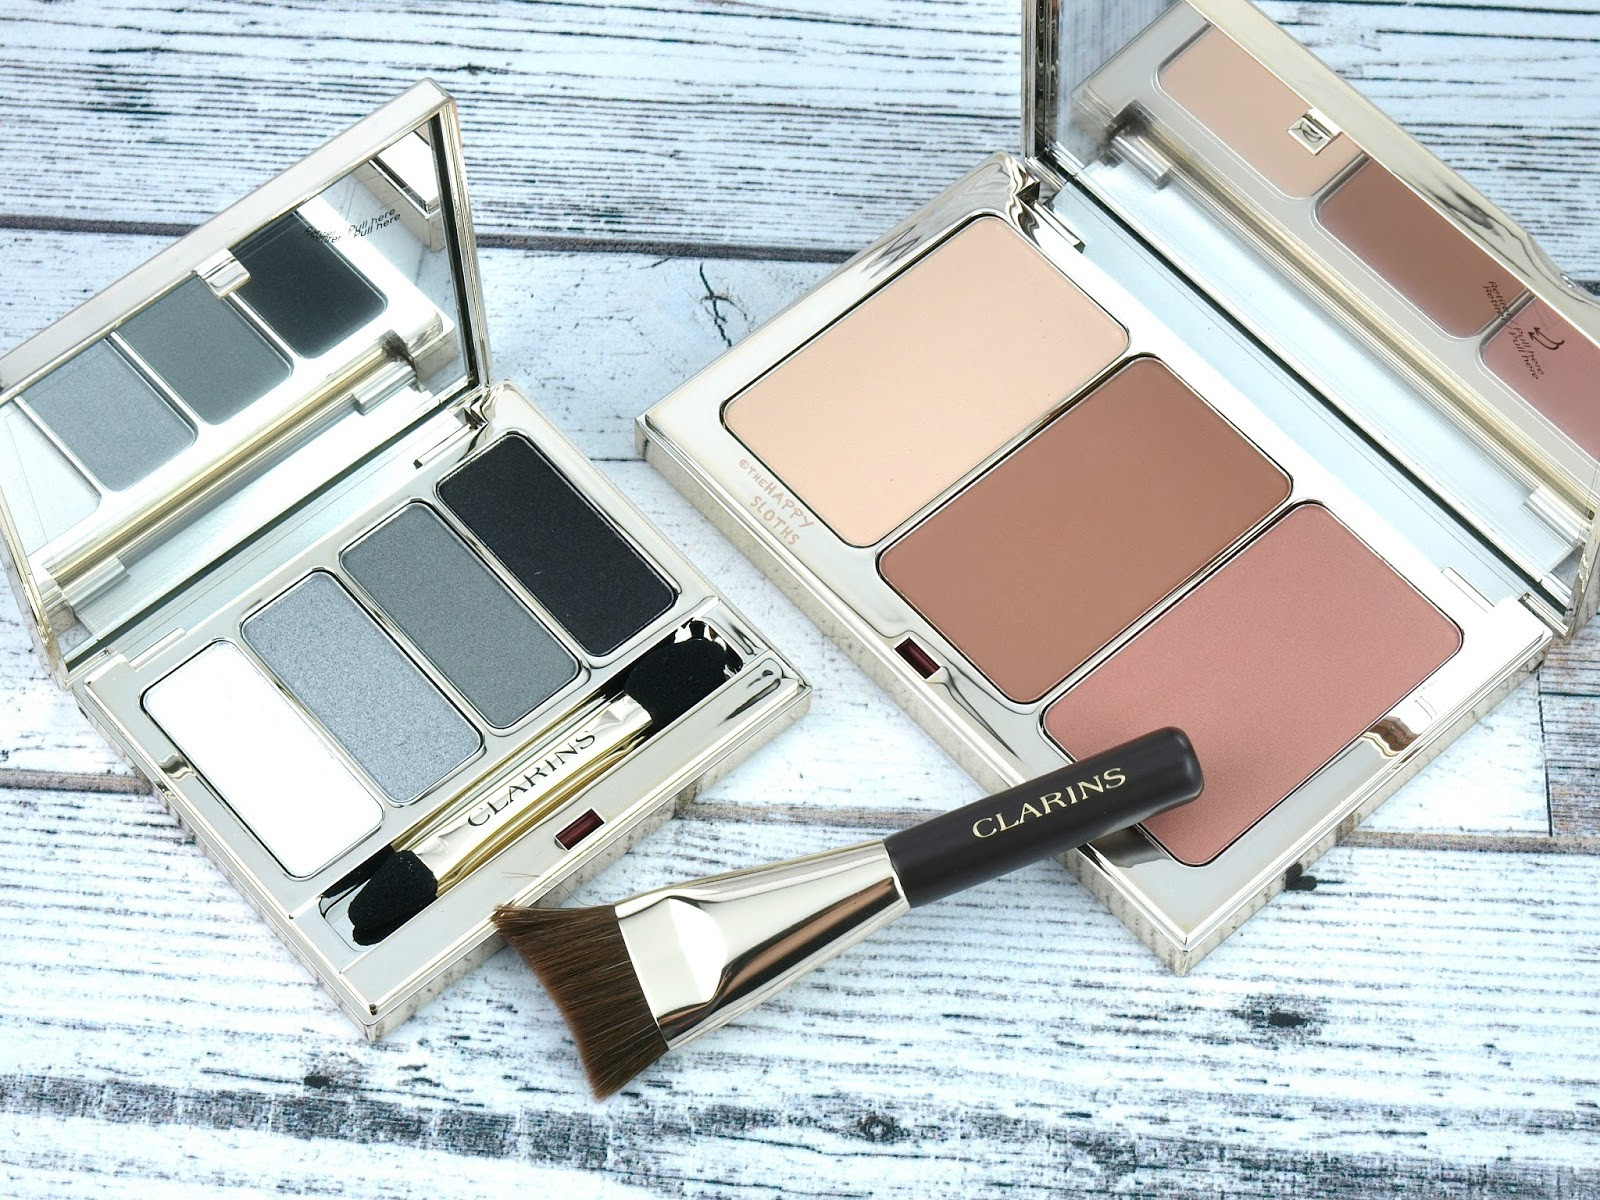 Clarins Spring 2017 Makeup Collection: Review and Swatches